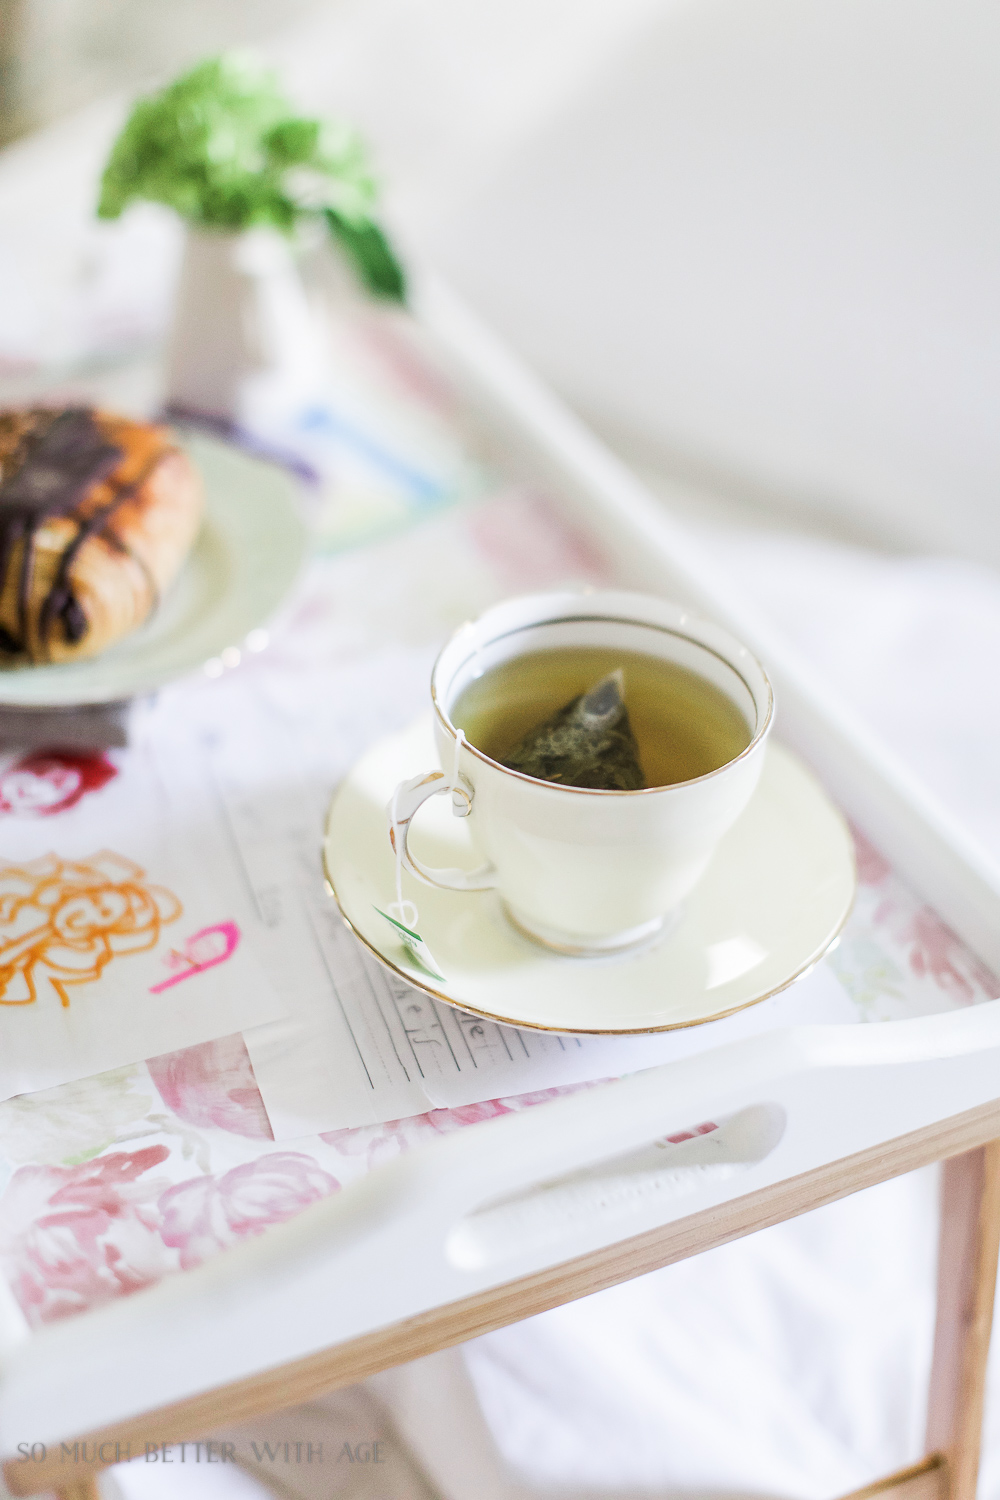 Mother's Day breakfast-in-bed tray with decoupaged kids' art / teacup  - So Much Better With Age